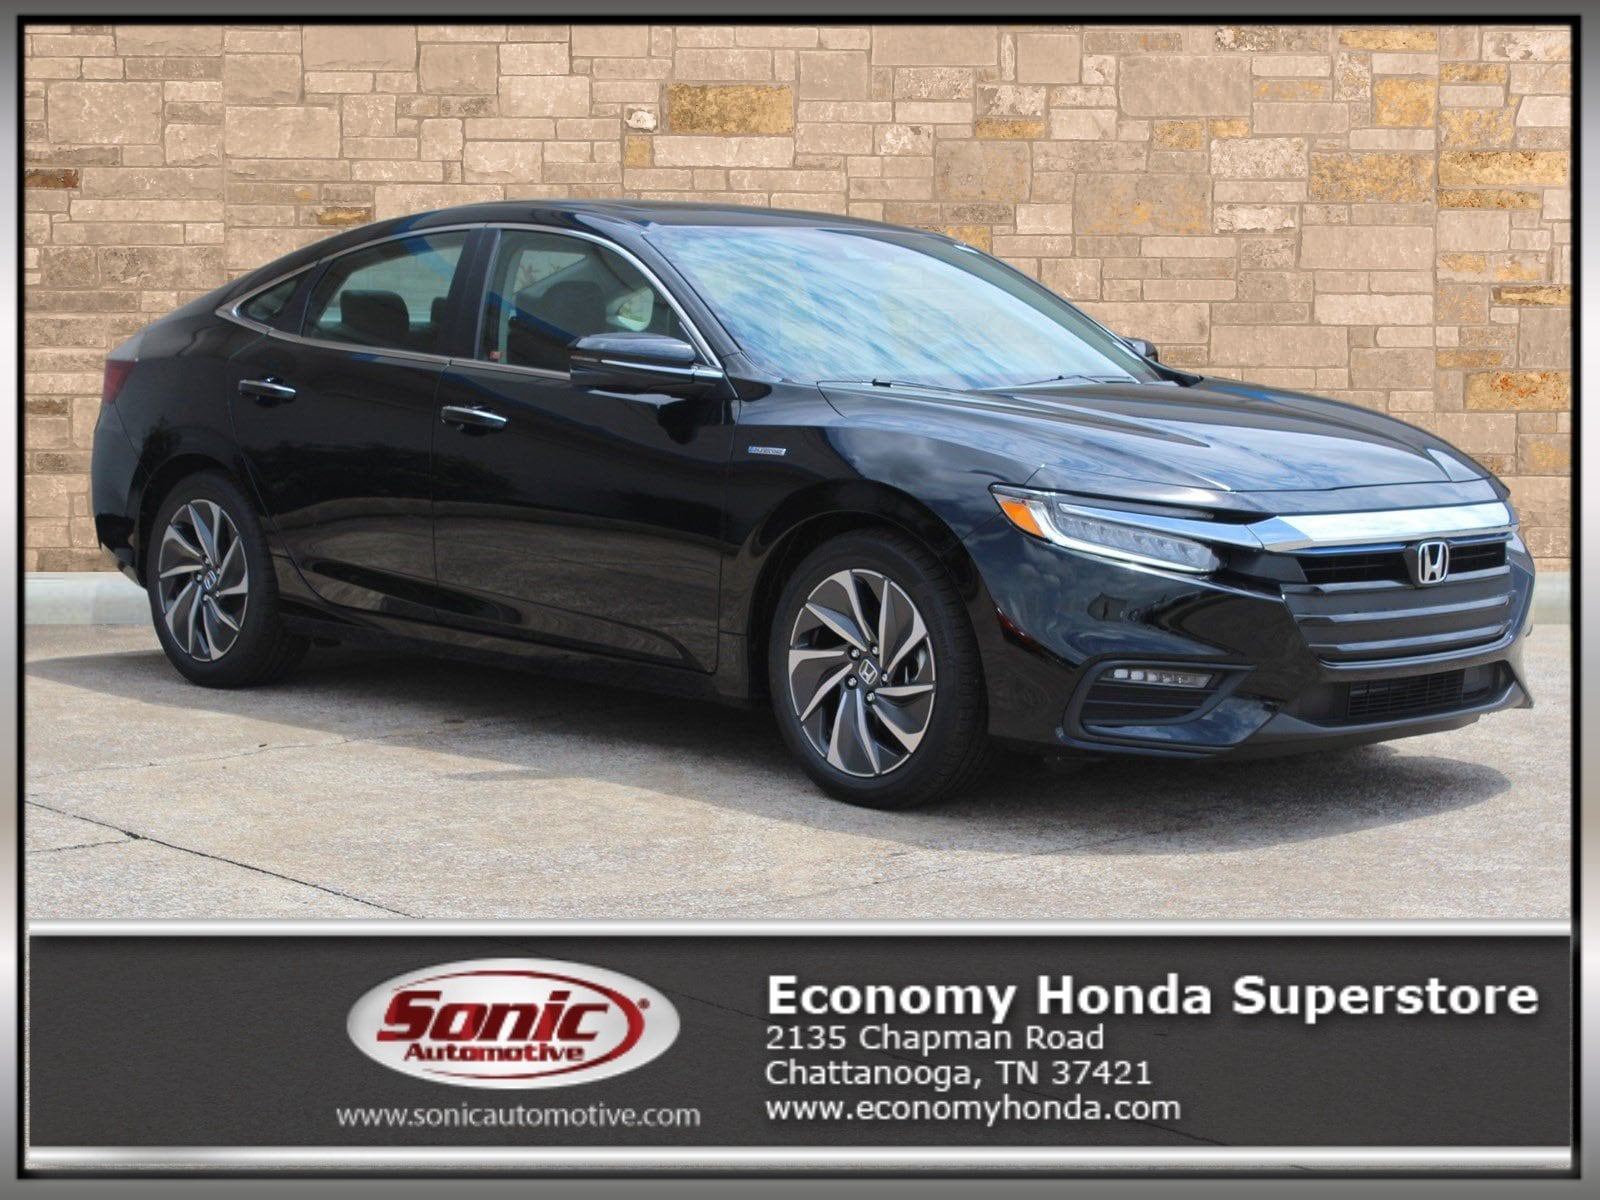 New Used Honda Vehicles Dealer Near Chattanooga Tn Dalton Ga 2005 Crv Parts Discount Factory Oem And 2019 Insight Touring Sedan